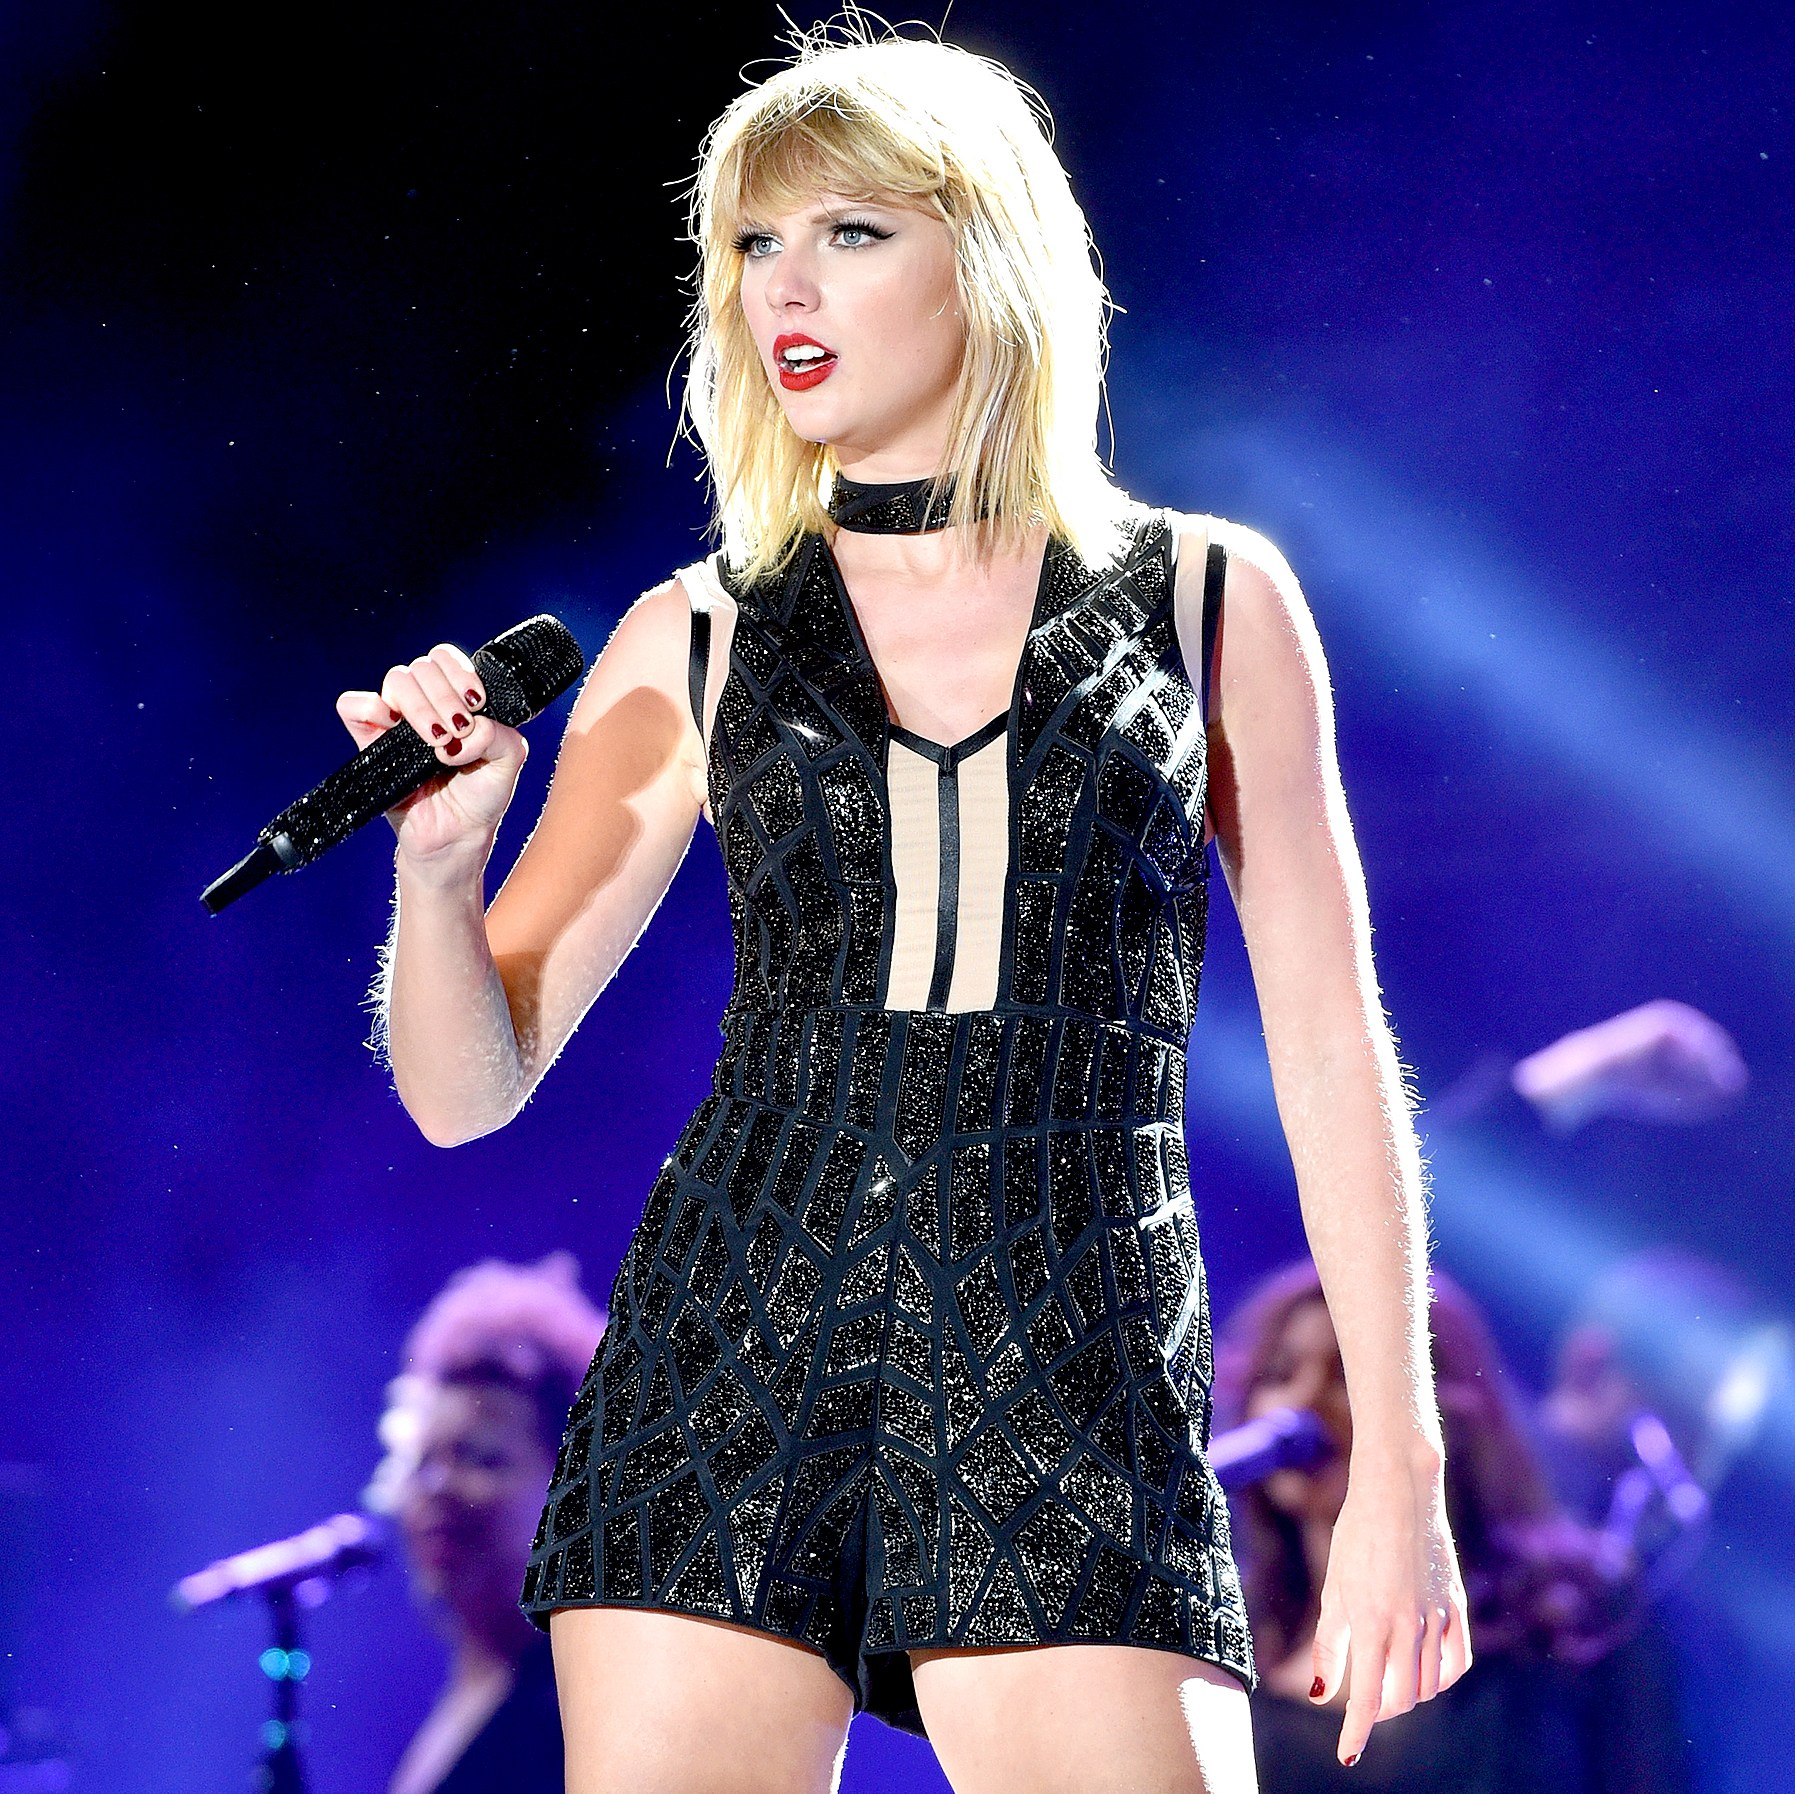 Taylor Swift perfoms onstage during the Formula 1 USGP on October 22, 2016 in Austin, Texas. John Shearer/LP5/Getty Images for TAS